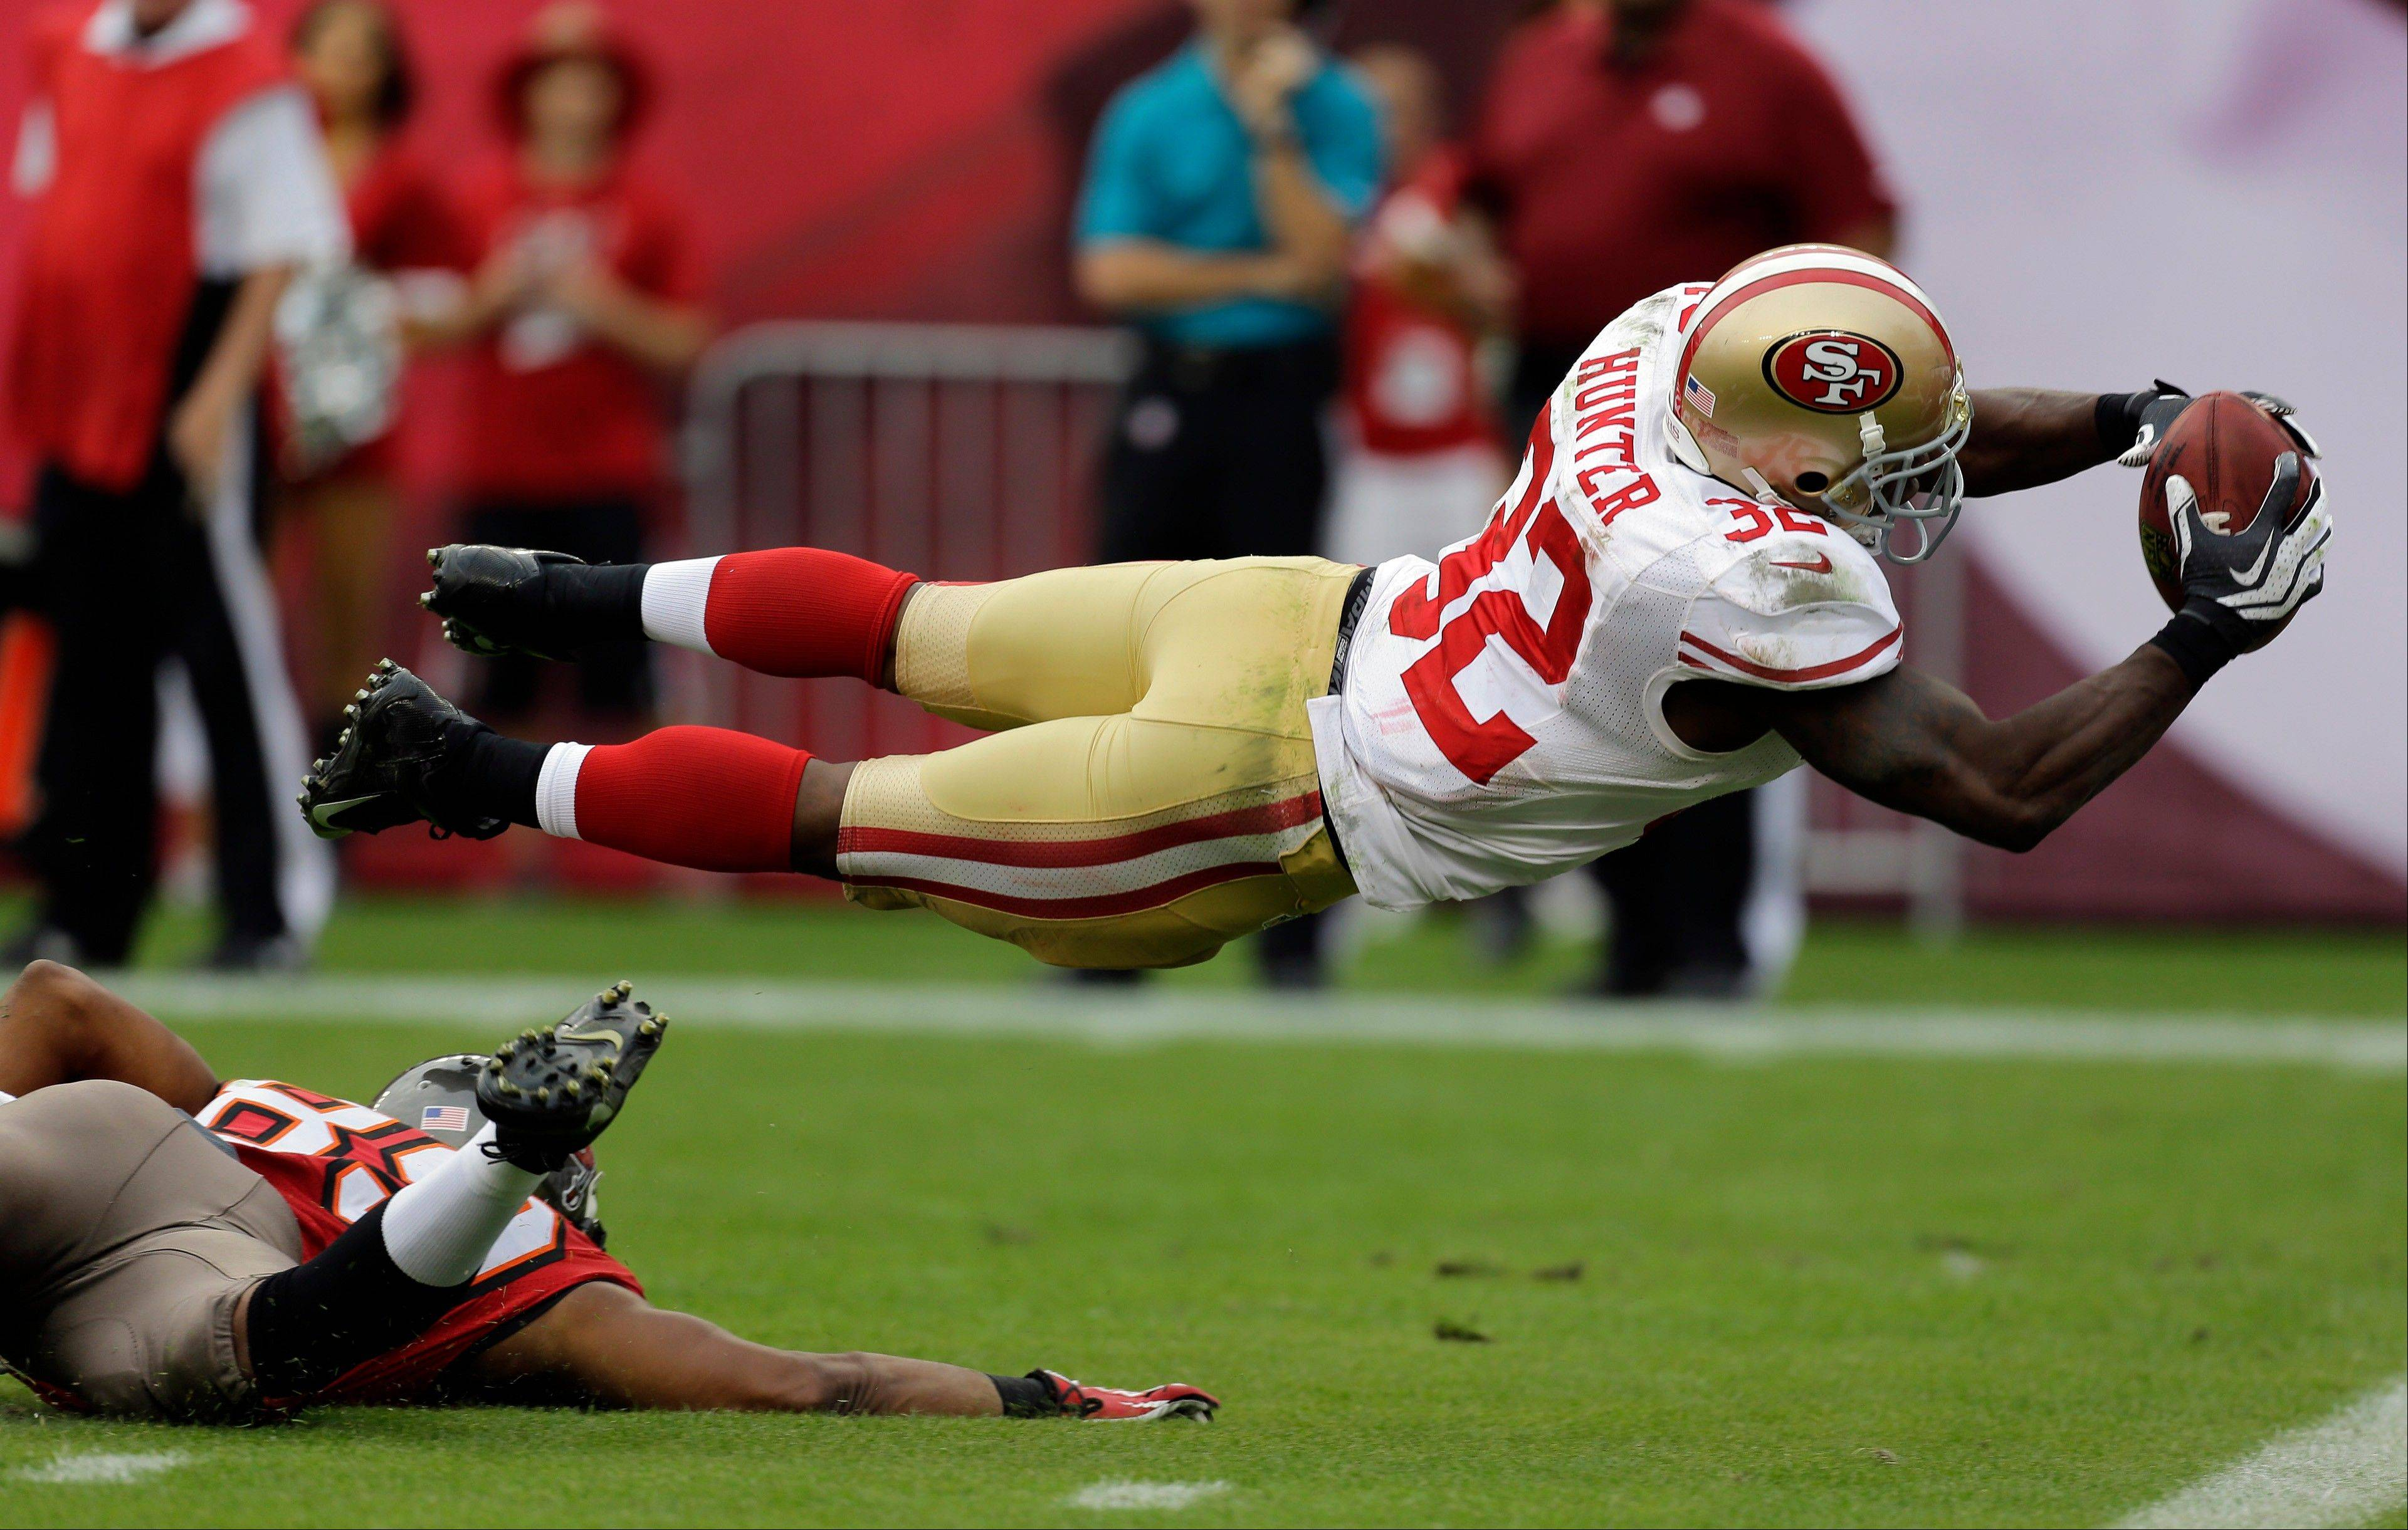 San Francisco 49ers' Kendall Hunter (32) dives into the end zone to score after picking up a fumble by Tampa Bay Buccaneers' Russell Shepard during the fourth quarter of an NFL football game Sunday, Dec. 15, 2013, in Tampa, Fla.